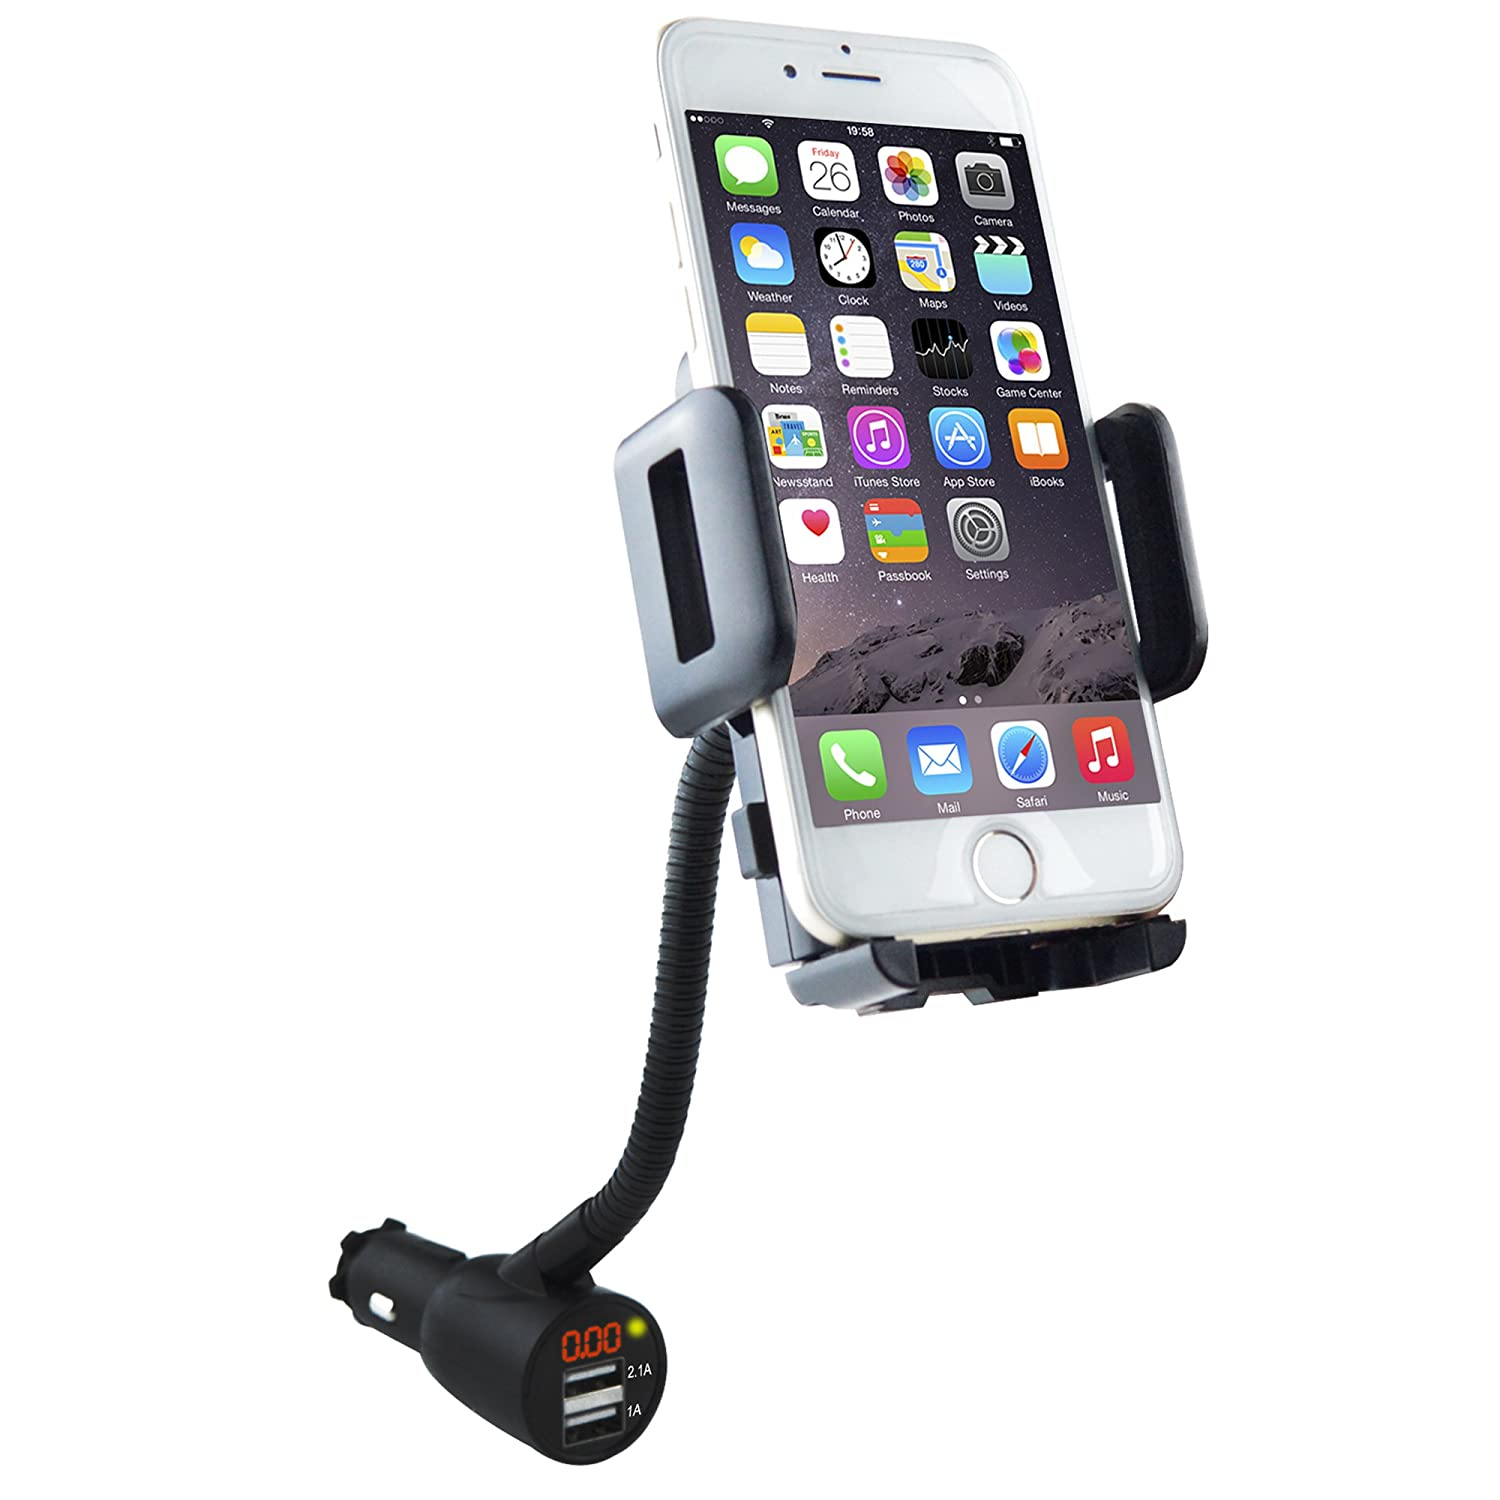 3-in-1 Cigarette Lighter Car Mount + Voltage Detector, SOAIY Car Mount Holder Cradle w/Dual USB 3.1A, Display Voltage Current Compatible with iPhoneXS XS Max XR X 8 7 6s 6 5s Samsung S8 S7 S6 S5